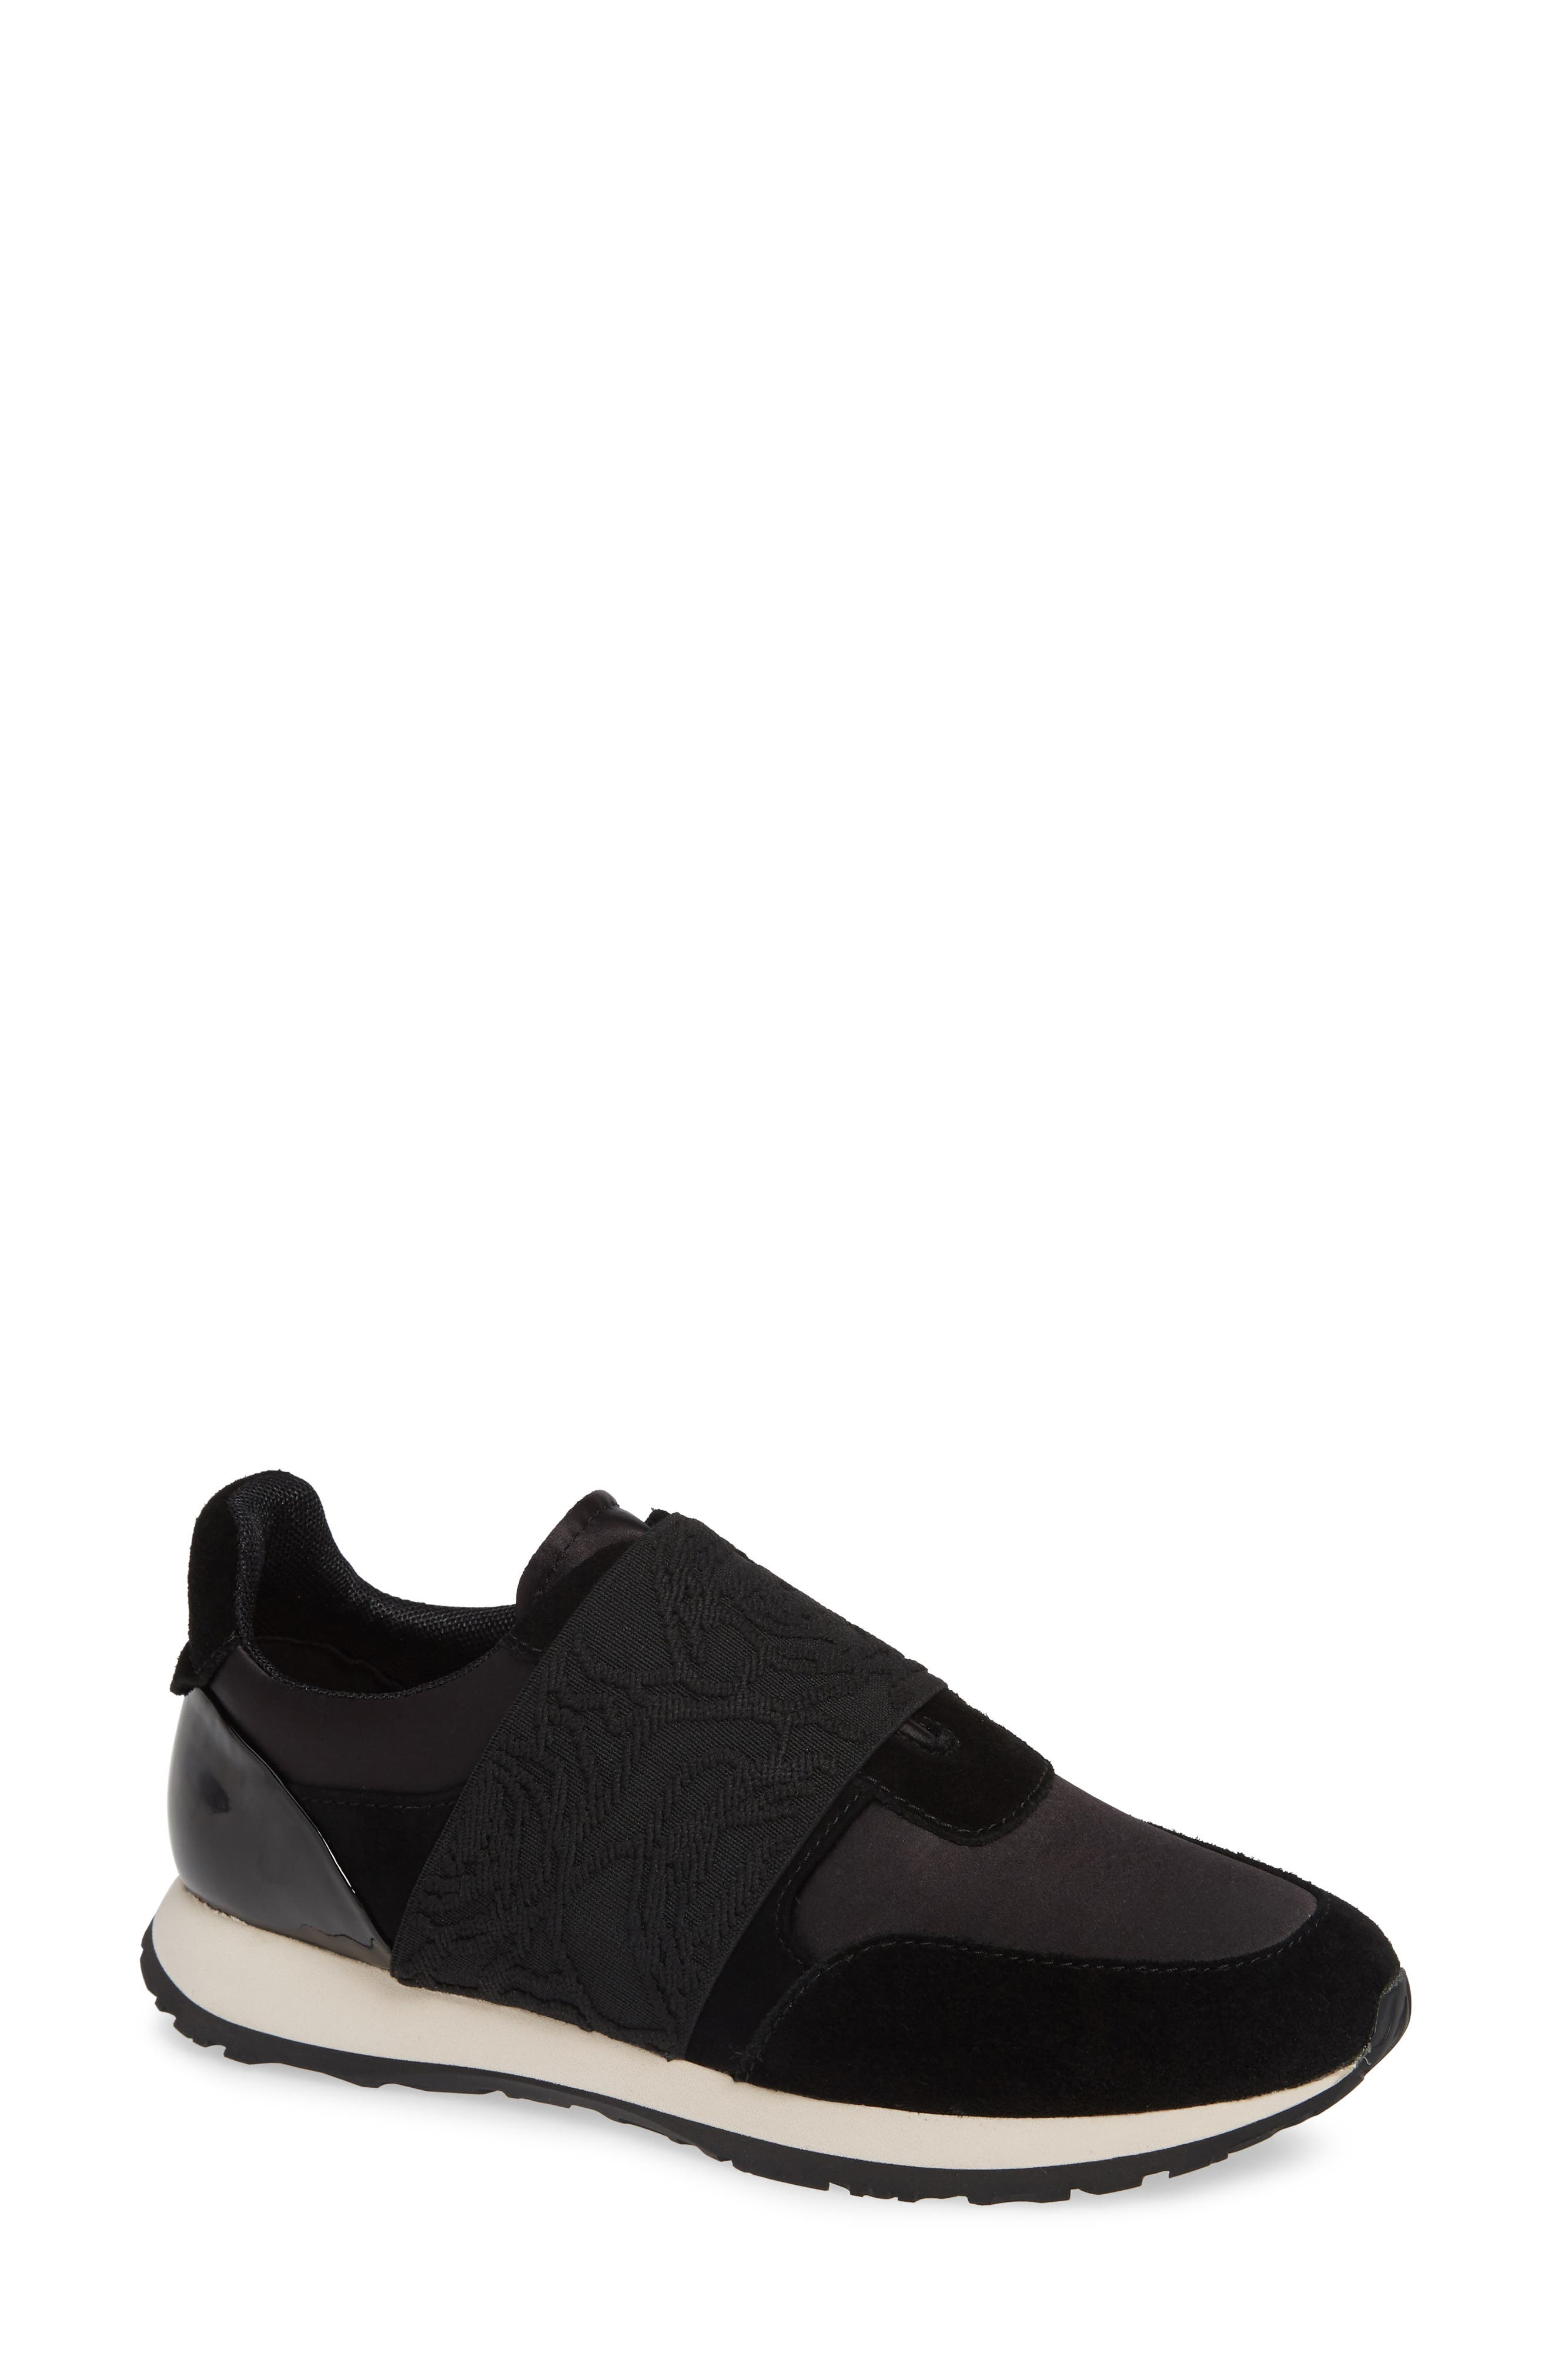 Carson Slip On Sneaker,                             Main thumbnail 1, color,                             BLACK SUEDE